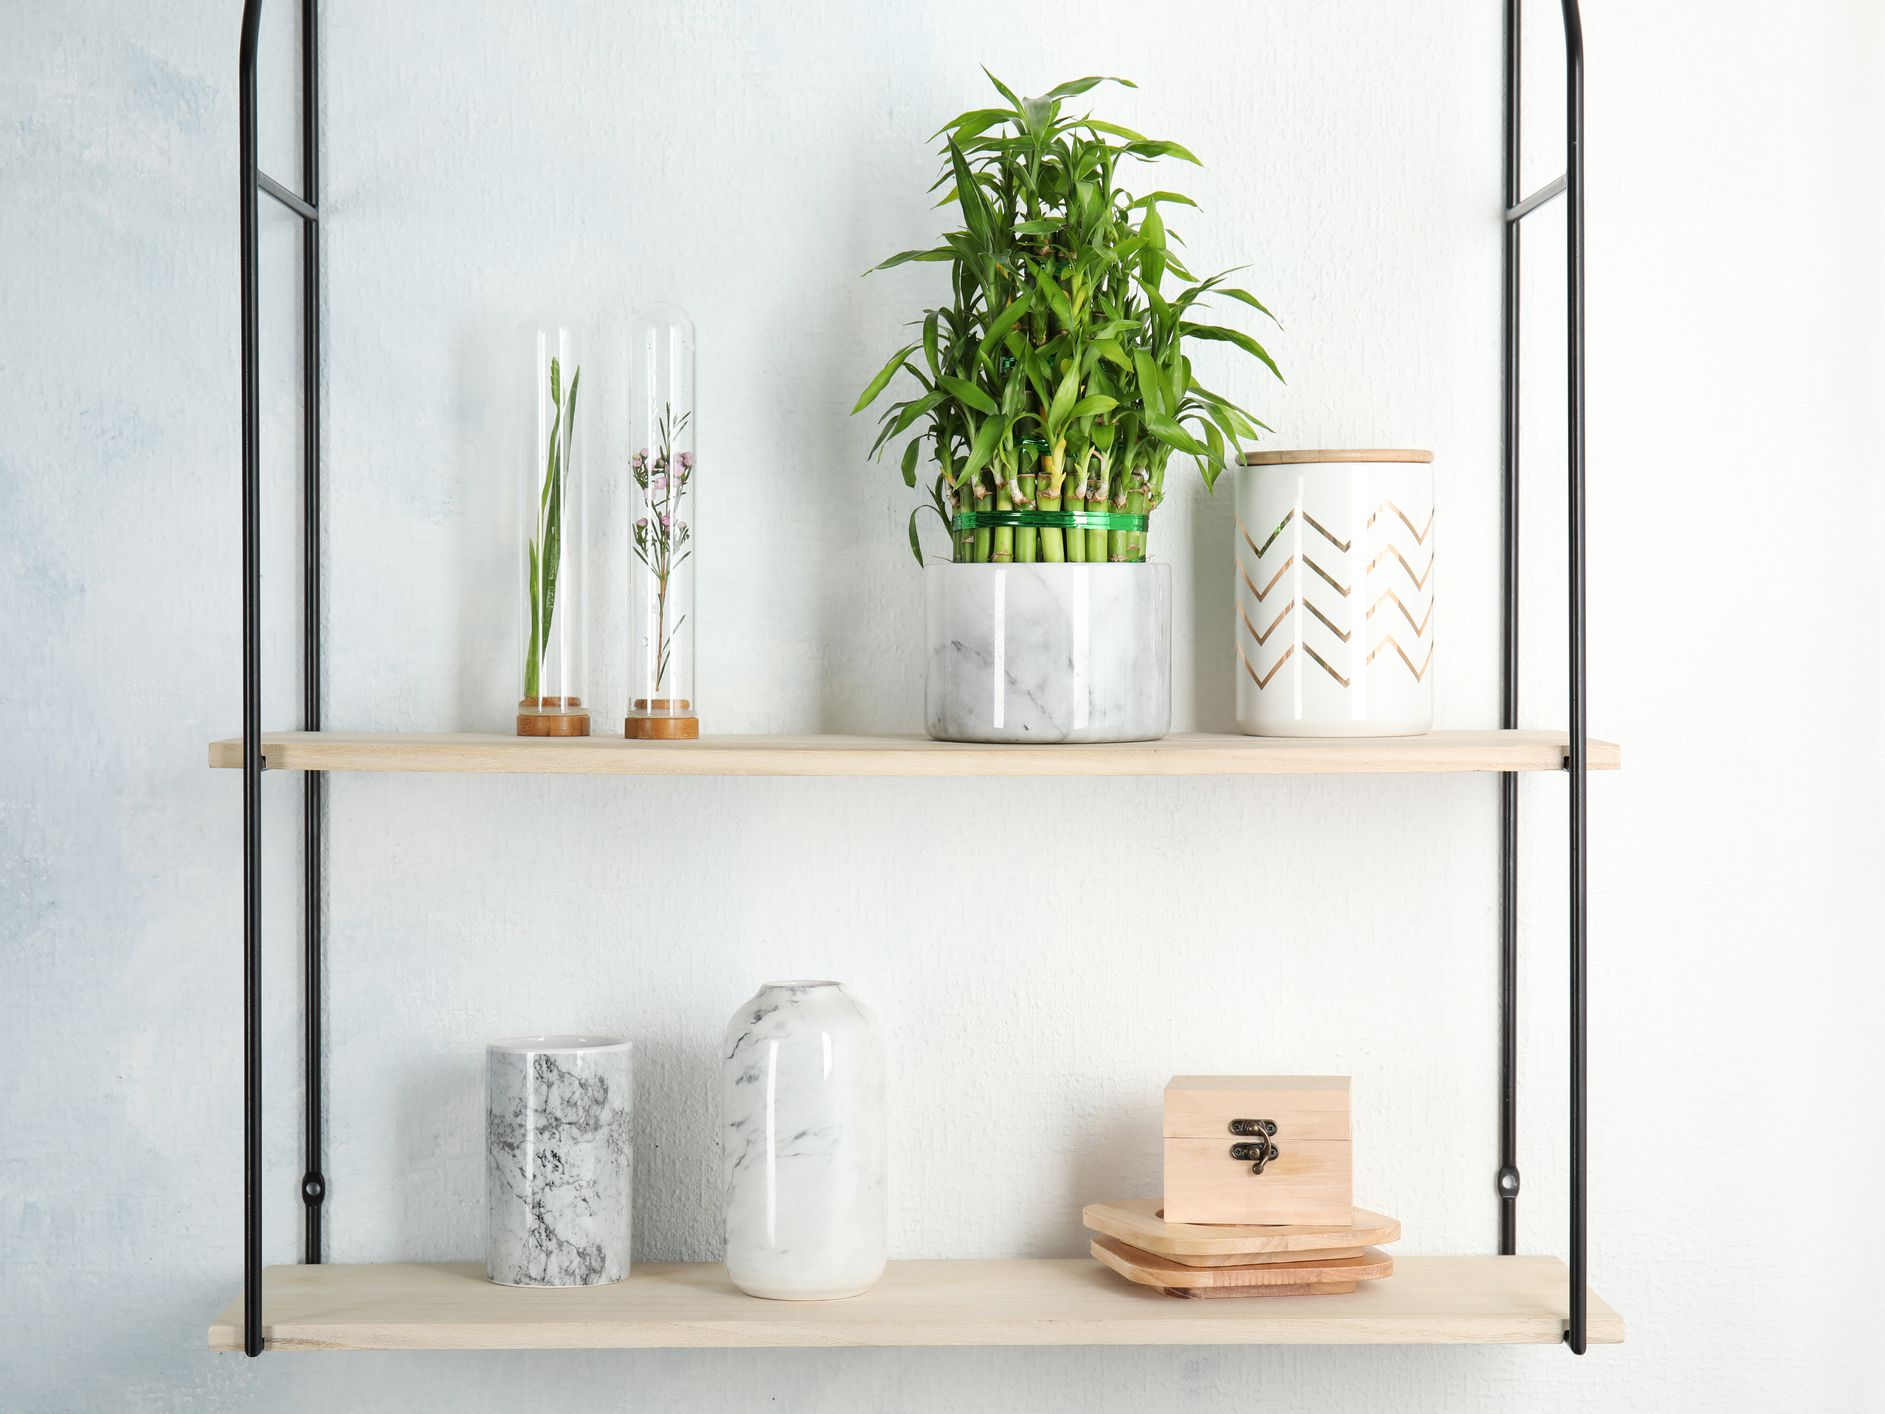 Lucky Bamboo Plant Care Growing Guide